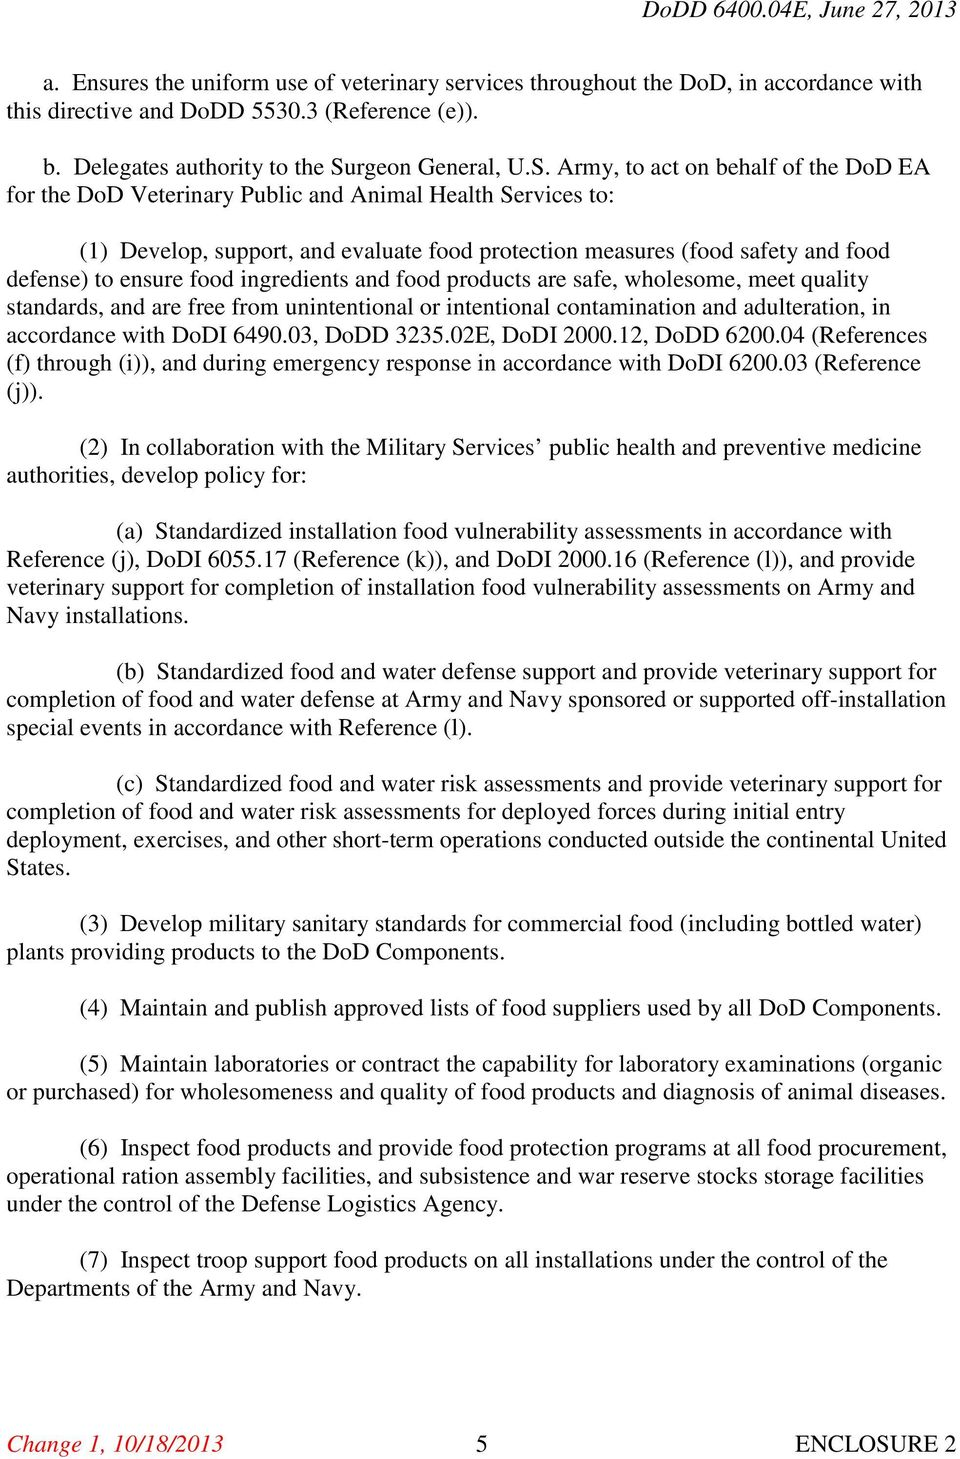 Army, to act on behalf of the DoD EA for the DoD Veterinary Public and Animal Health Services to: (1) Develop, support, and evaluate food protection measures (food safety and food defense) to ensure